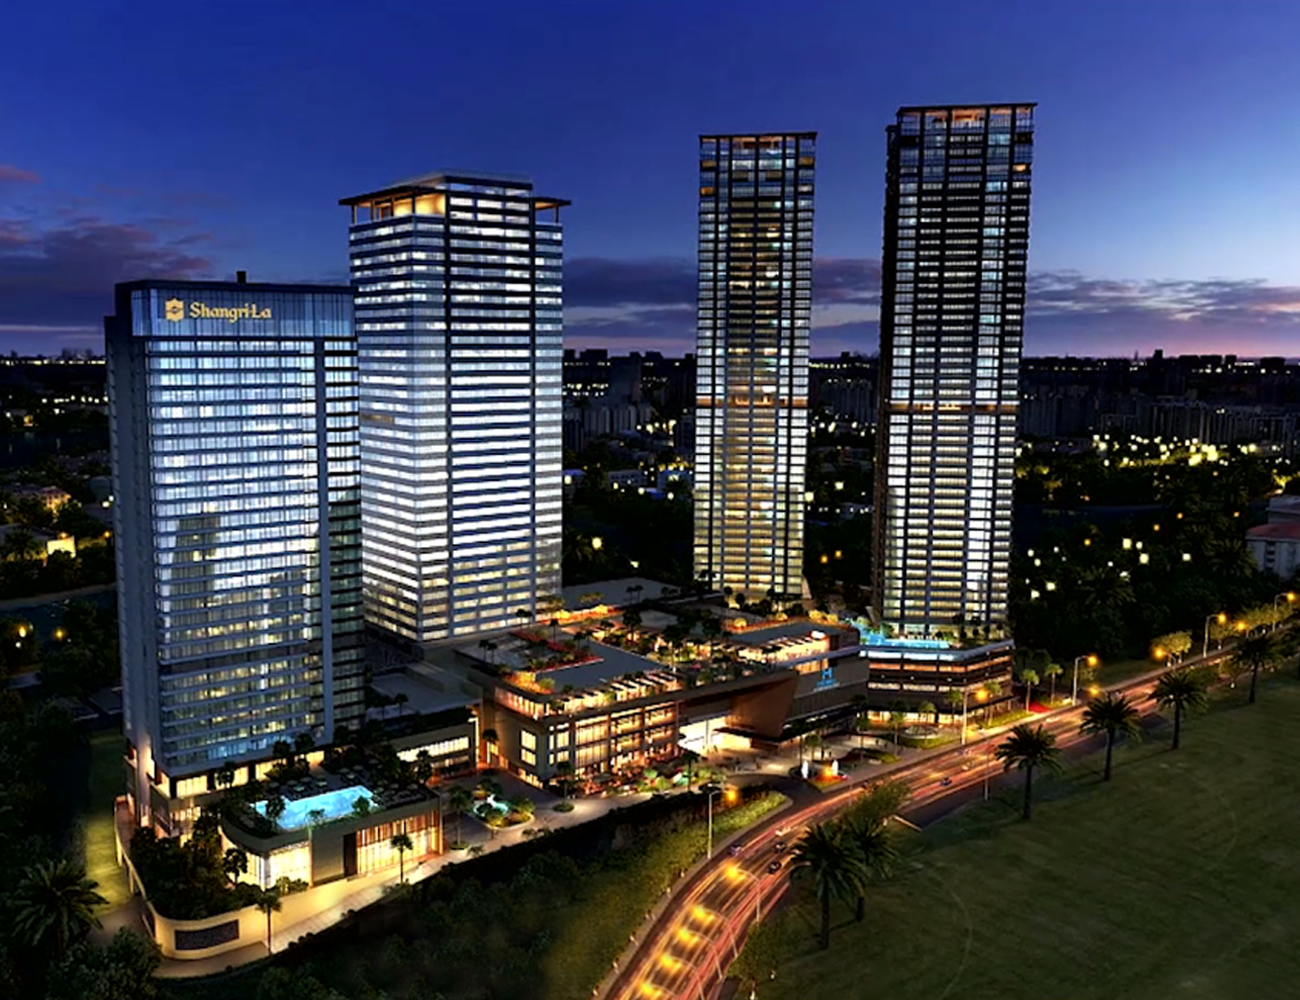 shangri la hotels The 5-star shangri-la hotel beijing is located in western beijing, 30 minutes away from beijing zoo offering accommodation in a 24-story lavish building, the.